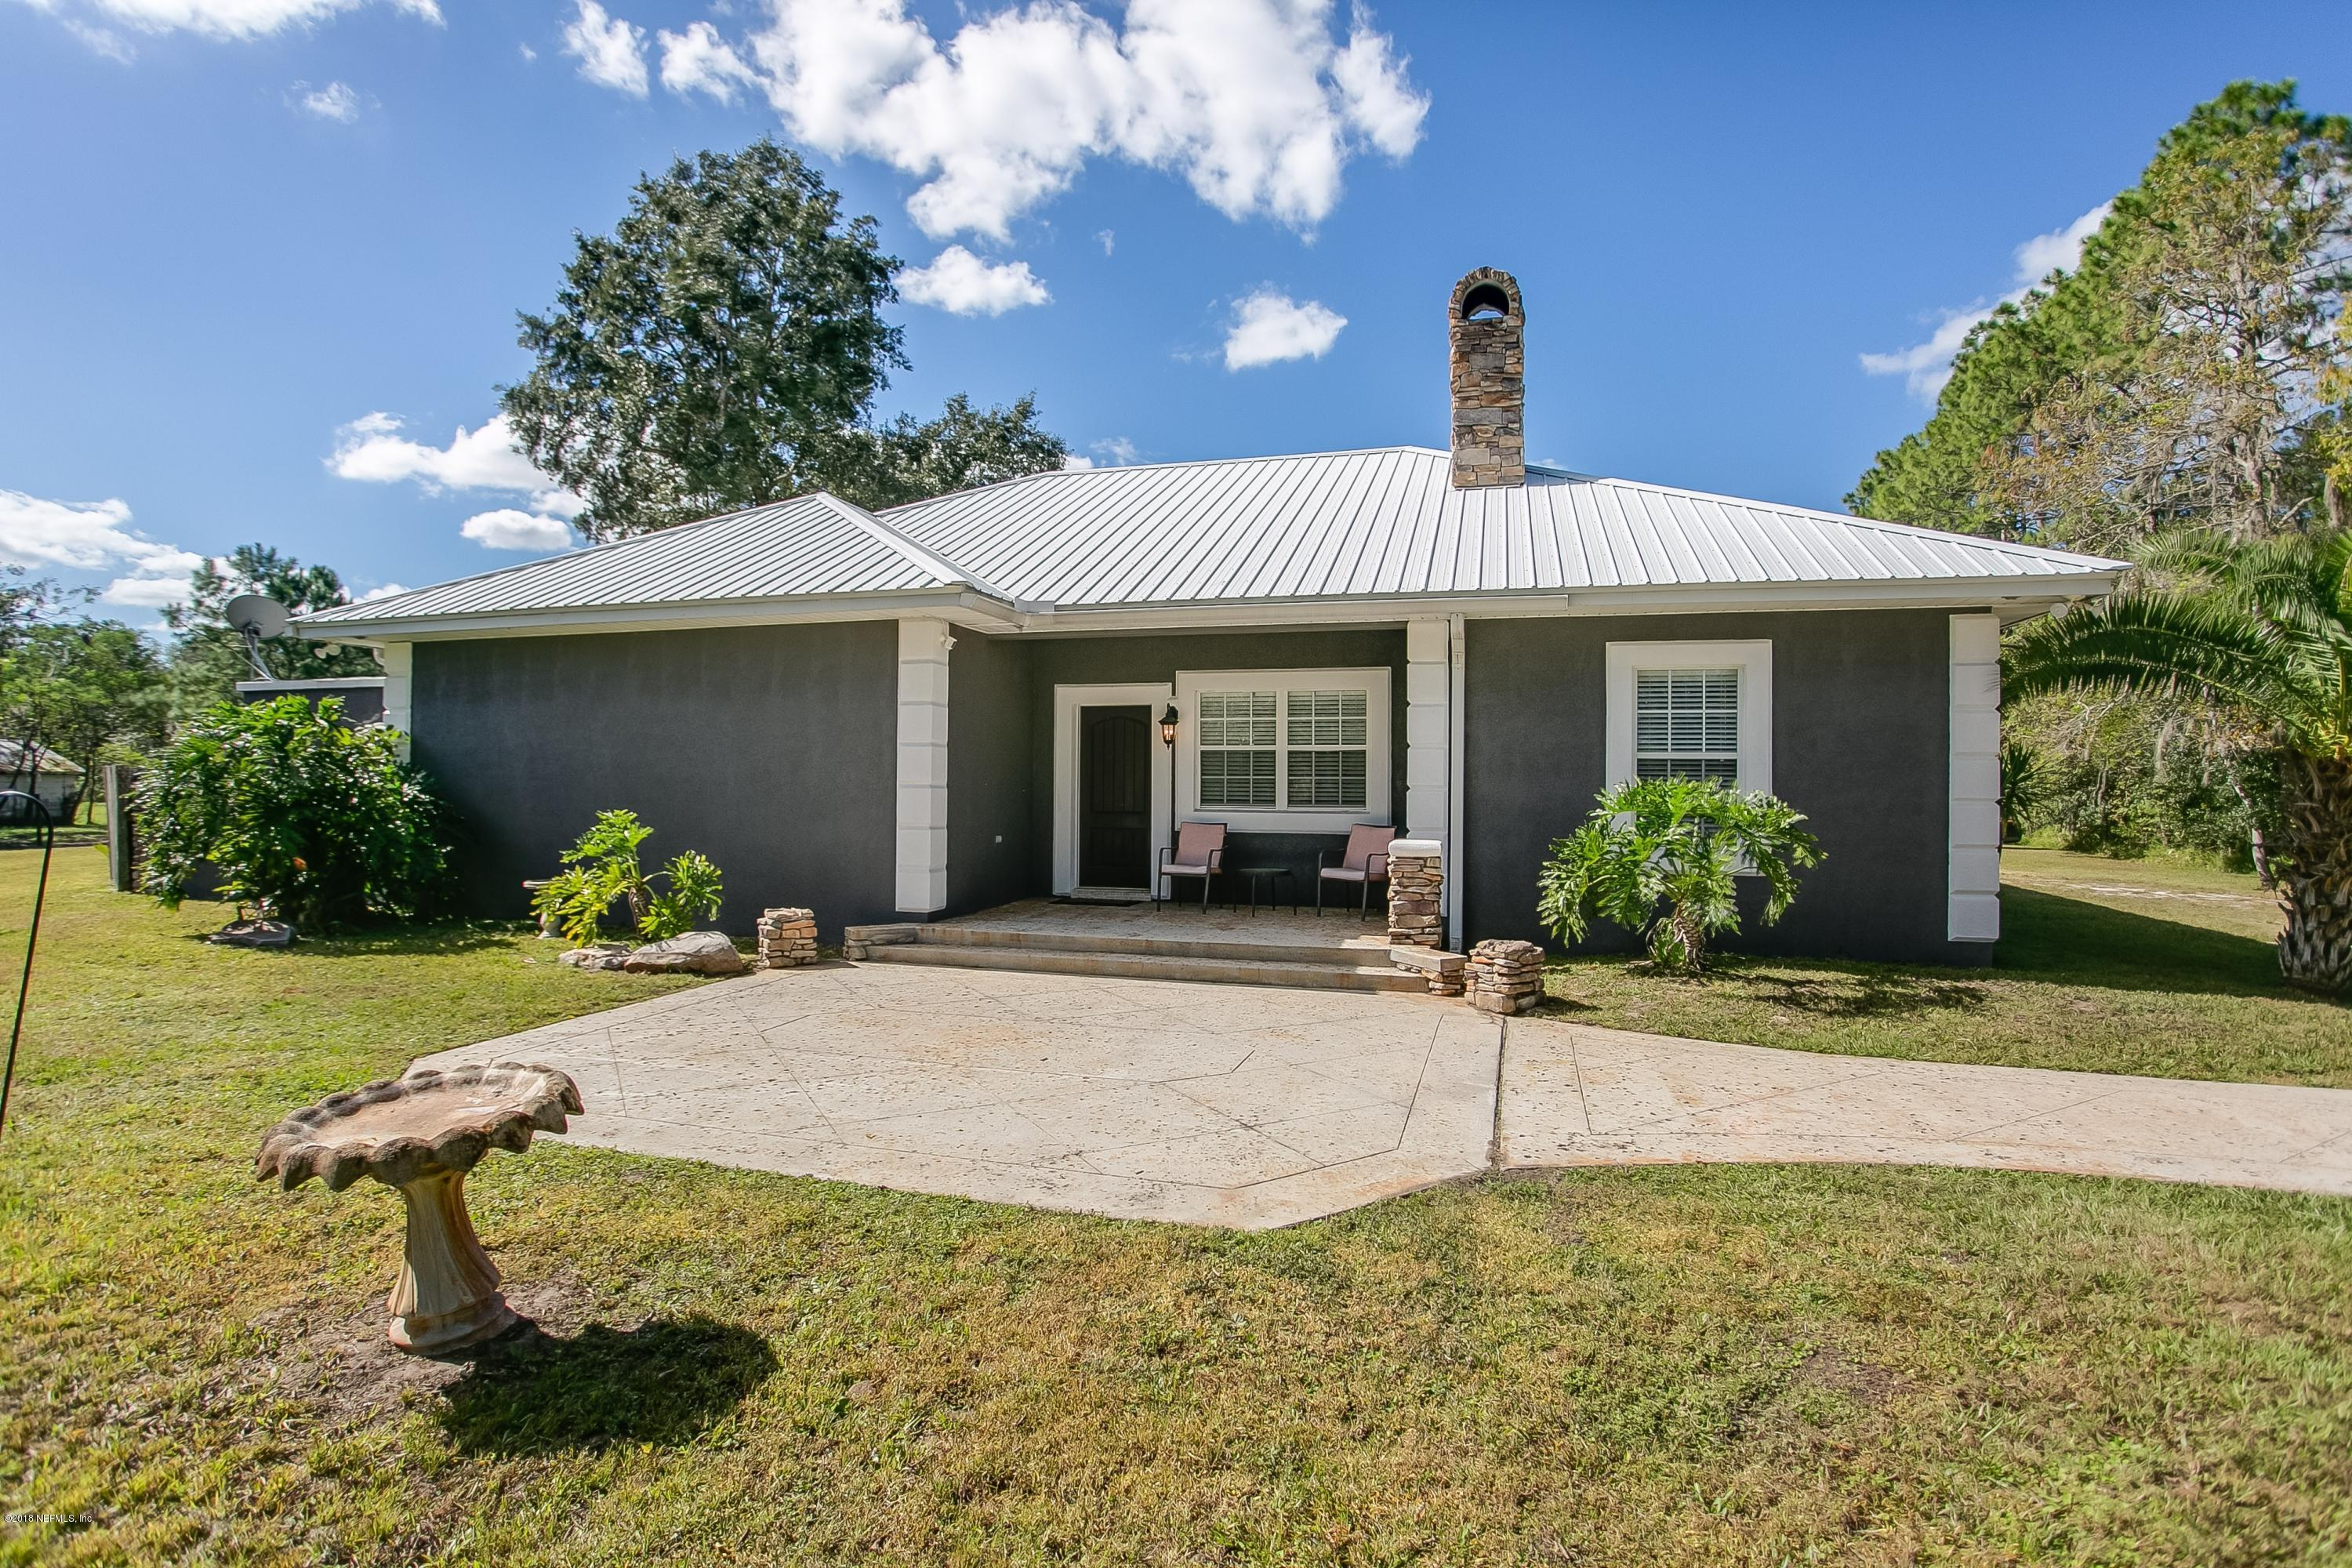 5005 SILO, ST AUGUSTINE, FLORIDA 32092, 3 Bedrooms Bedrooms, ,2 BathroomsBathrooms,Residential - single family,For sale,SILO,965239